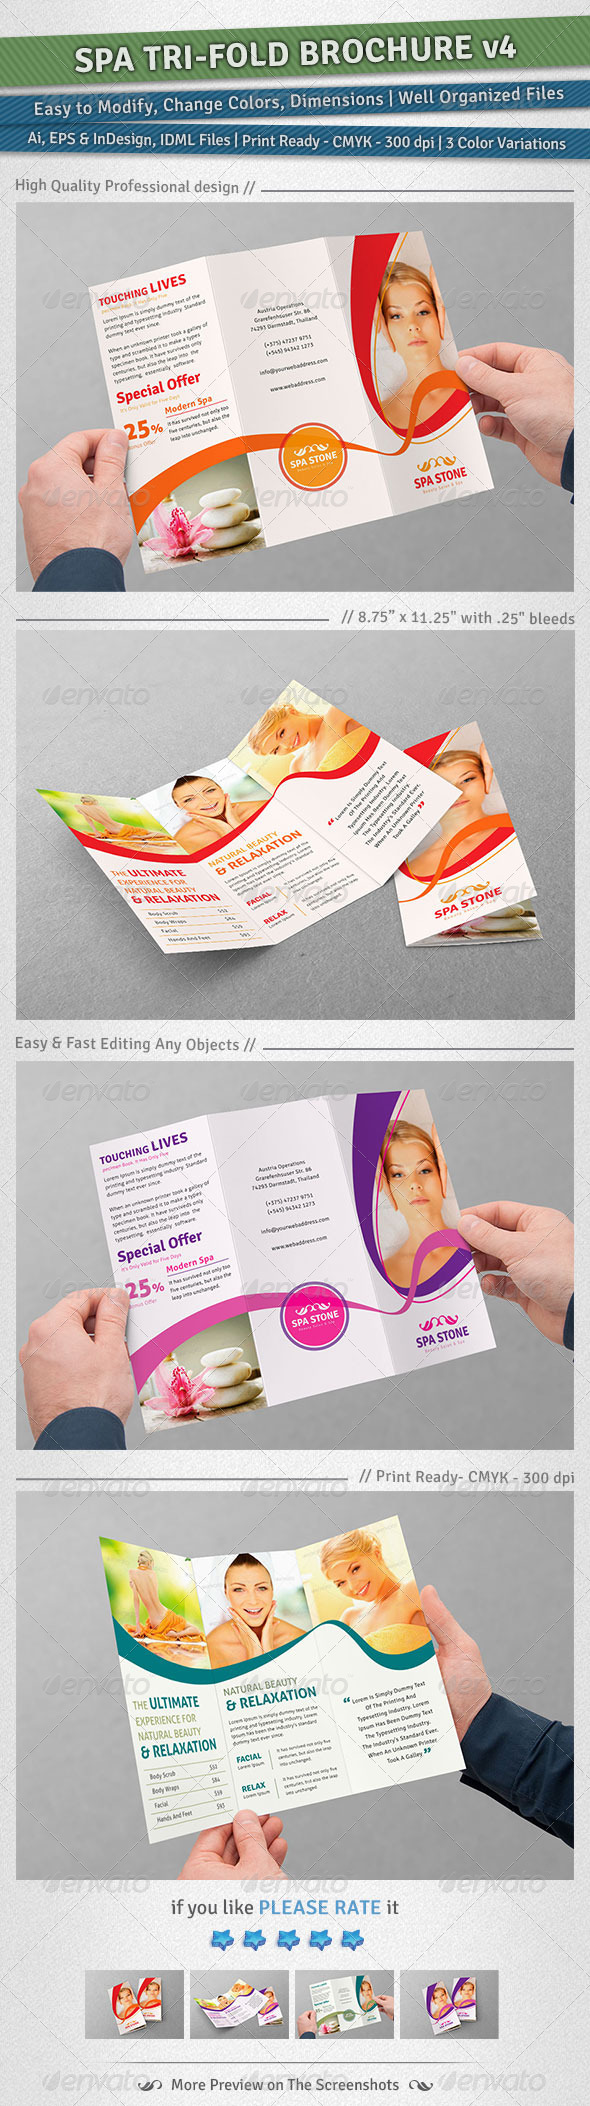 GraphicRiver Spa Tri-Fold Brochure Volume 4 5069953